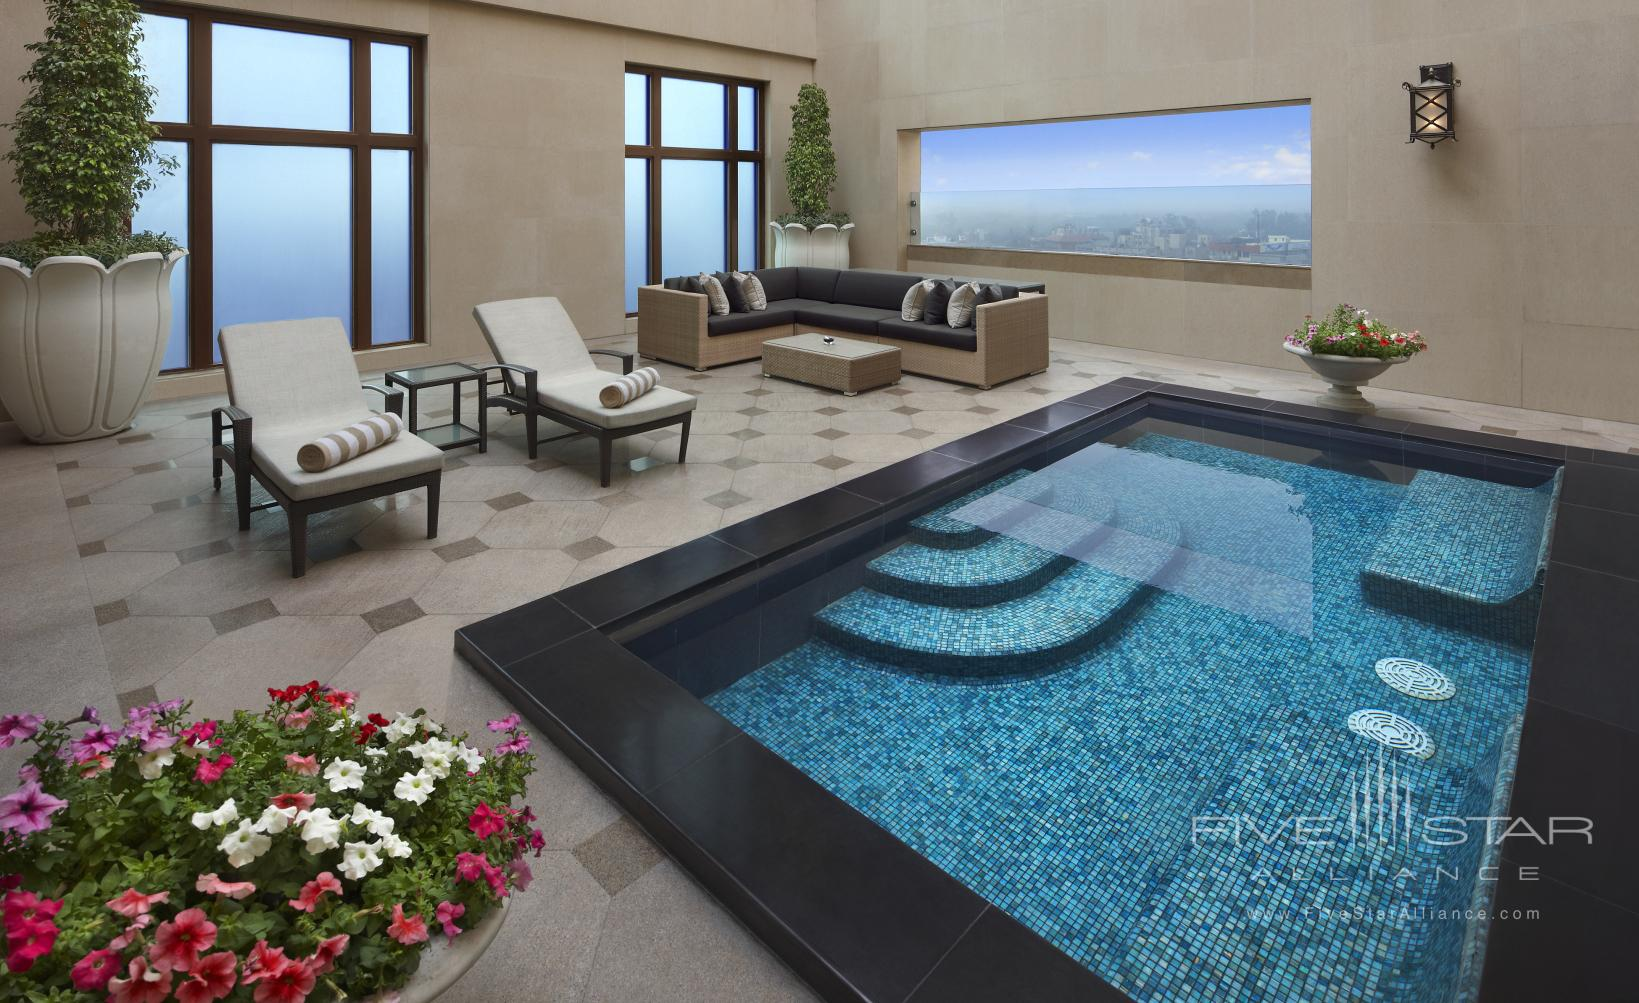 Grand Suite Plunge Pool at Leela Palace New Delhi